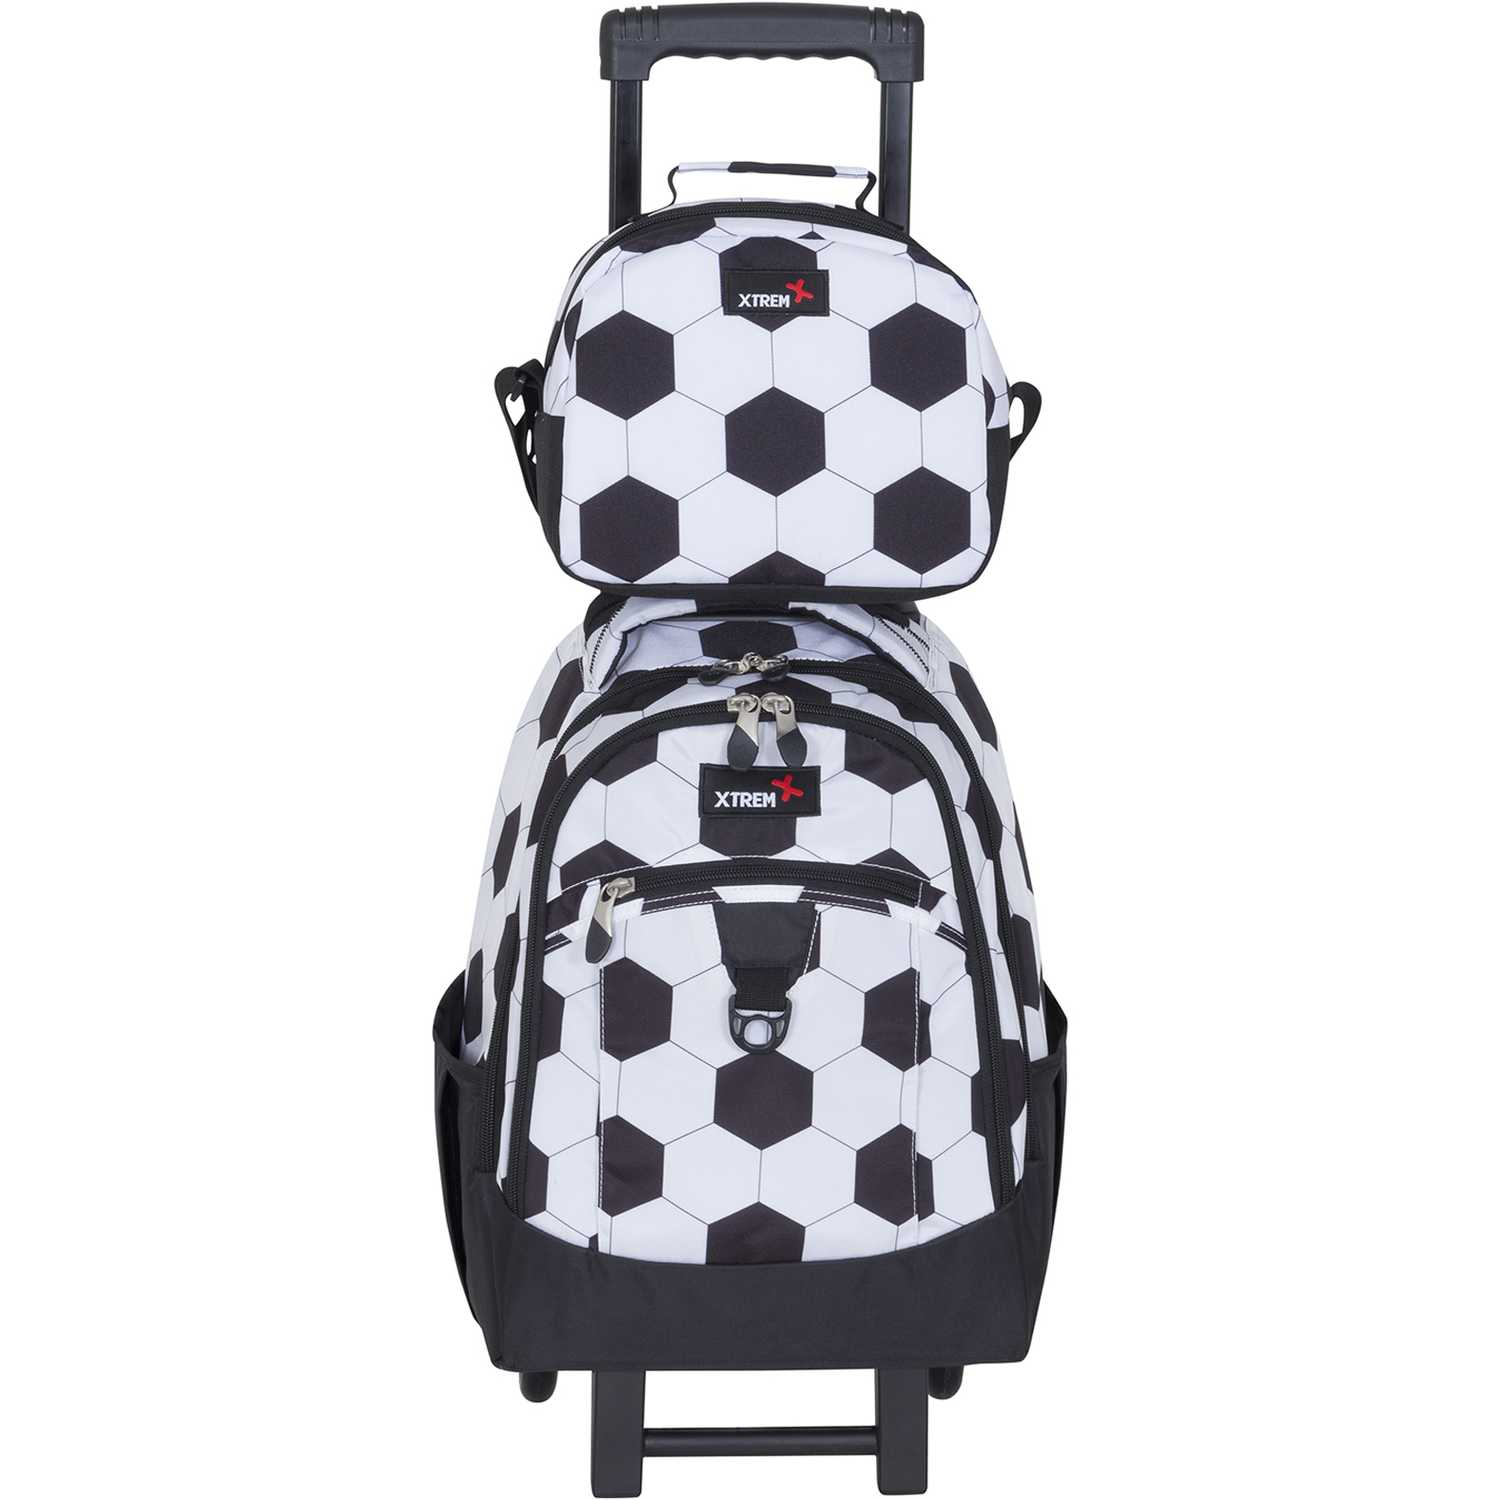 Xtrem backpack with wheels goal run 731 Blanco / negro Maletas para Niños